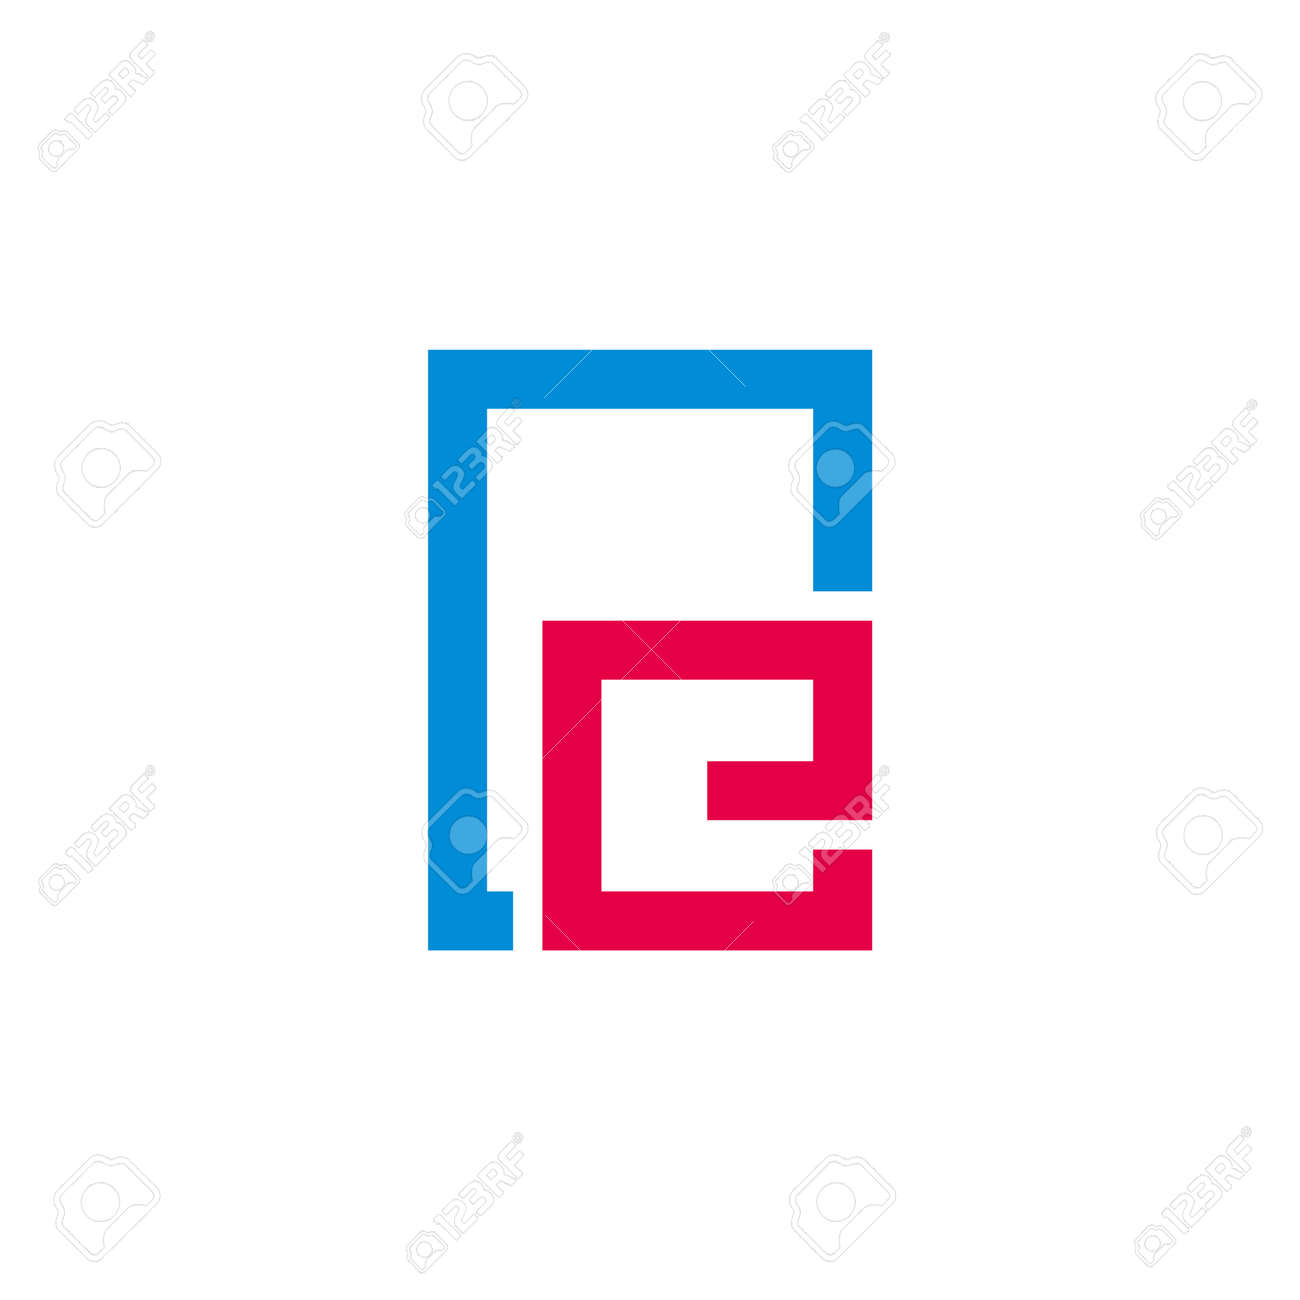 abstract letter re simple frame symbol logo vector - 152374989